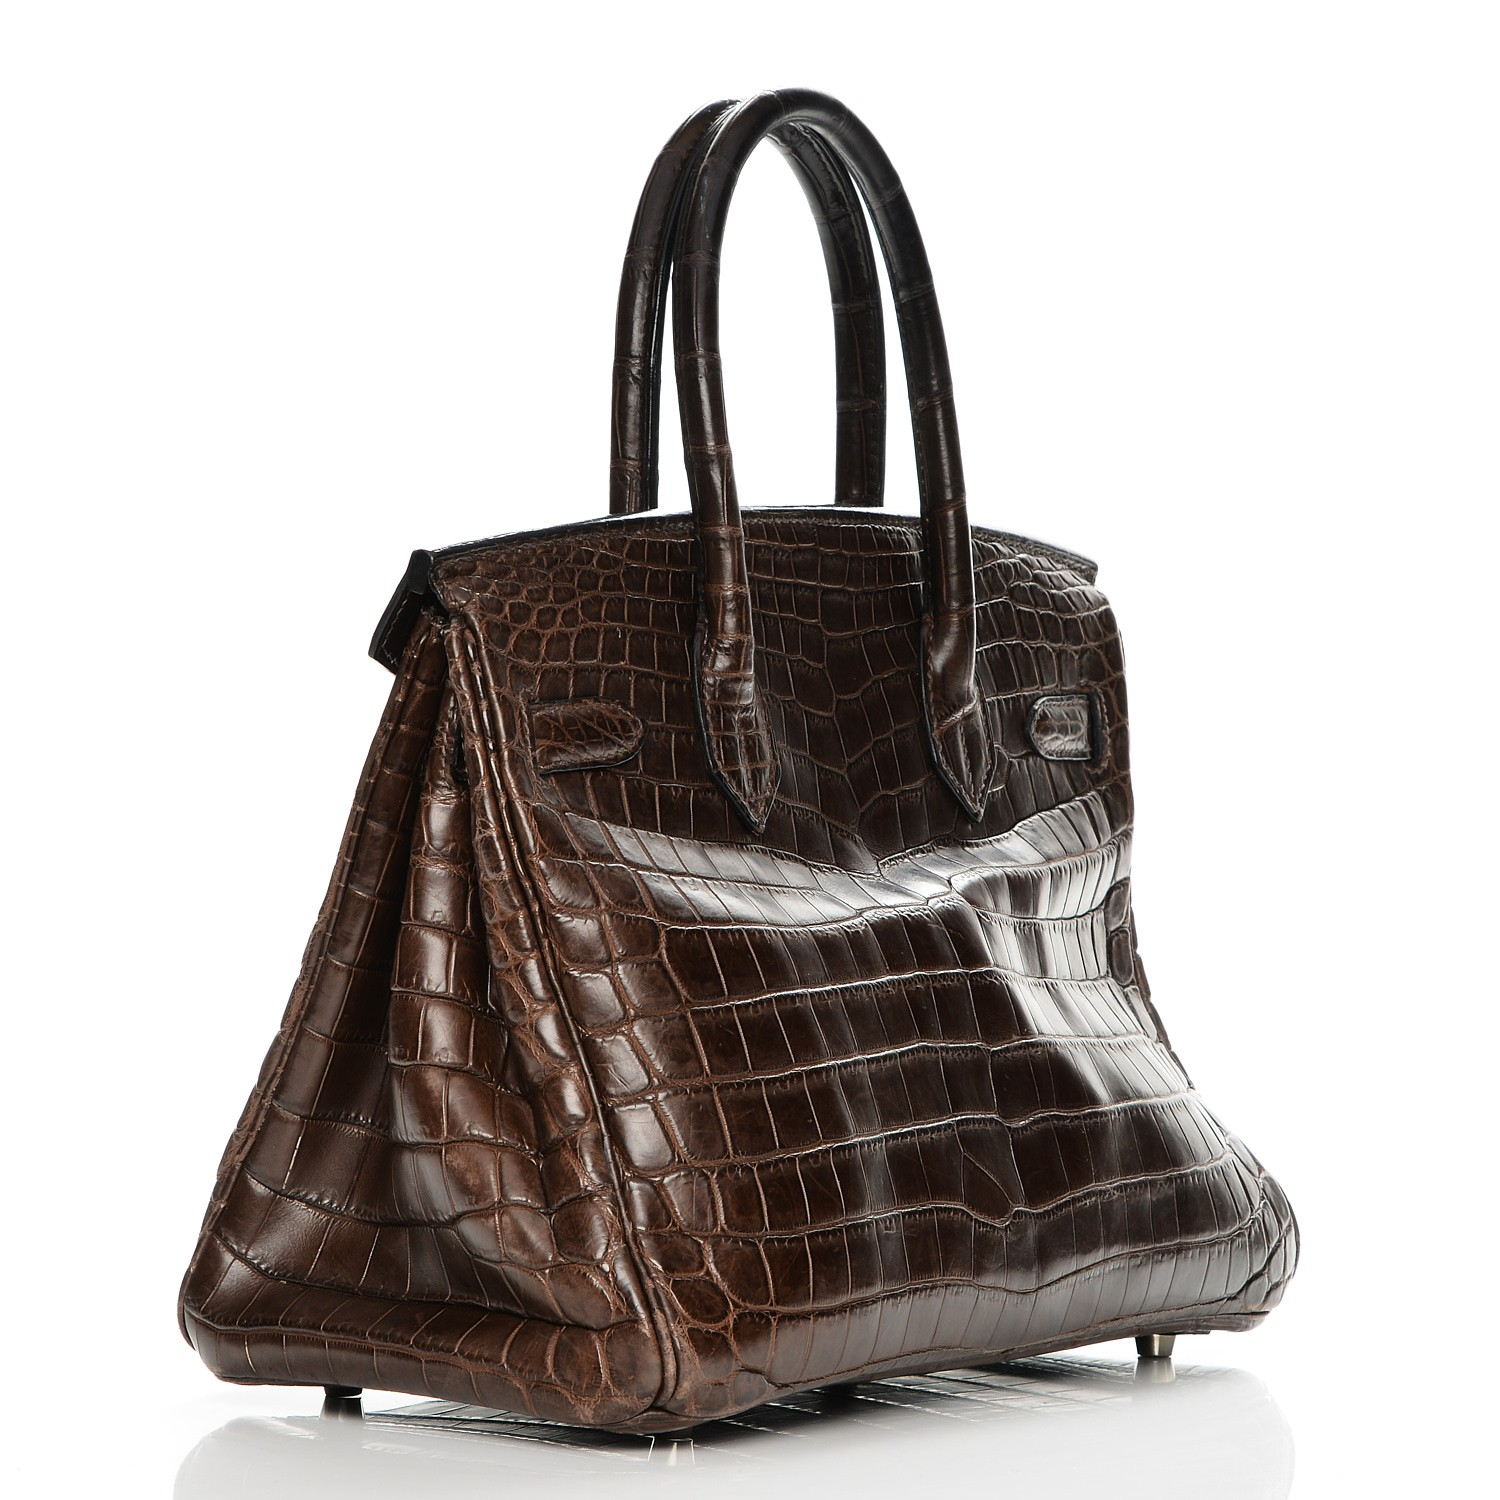 fd34cbc7611 2007 7cbce ebf1b; 50% off in the list of the top 10 expensive womens bags  in the world